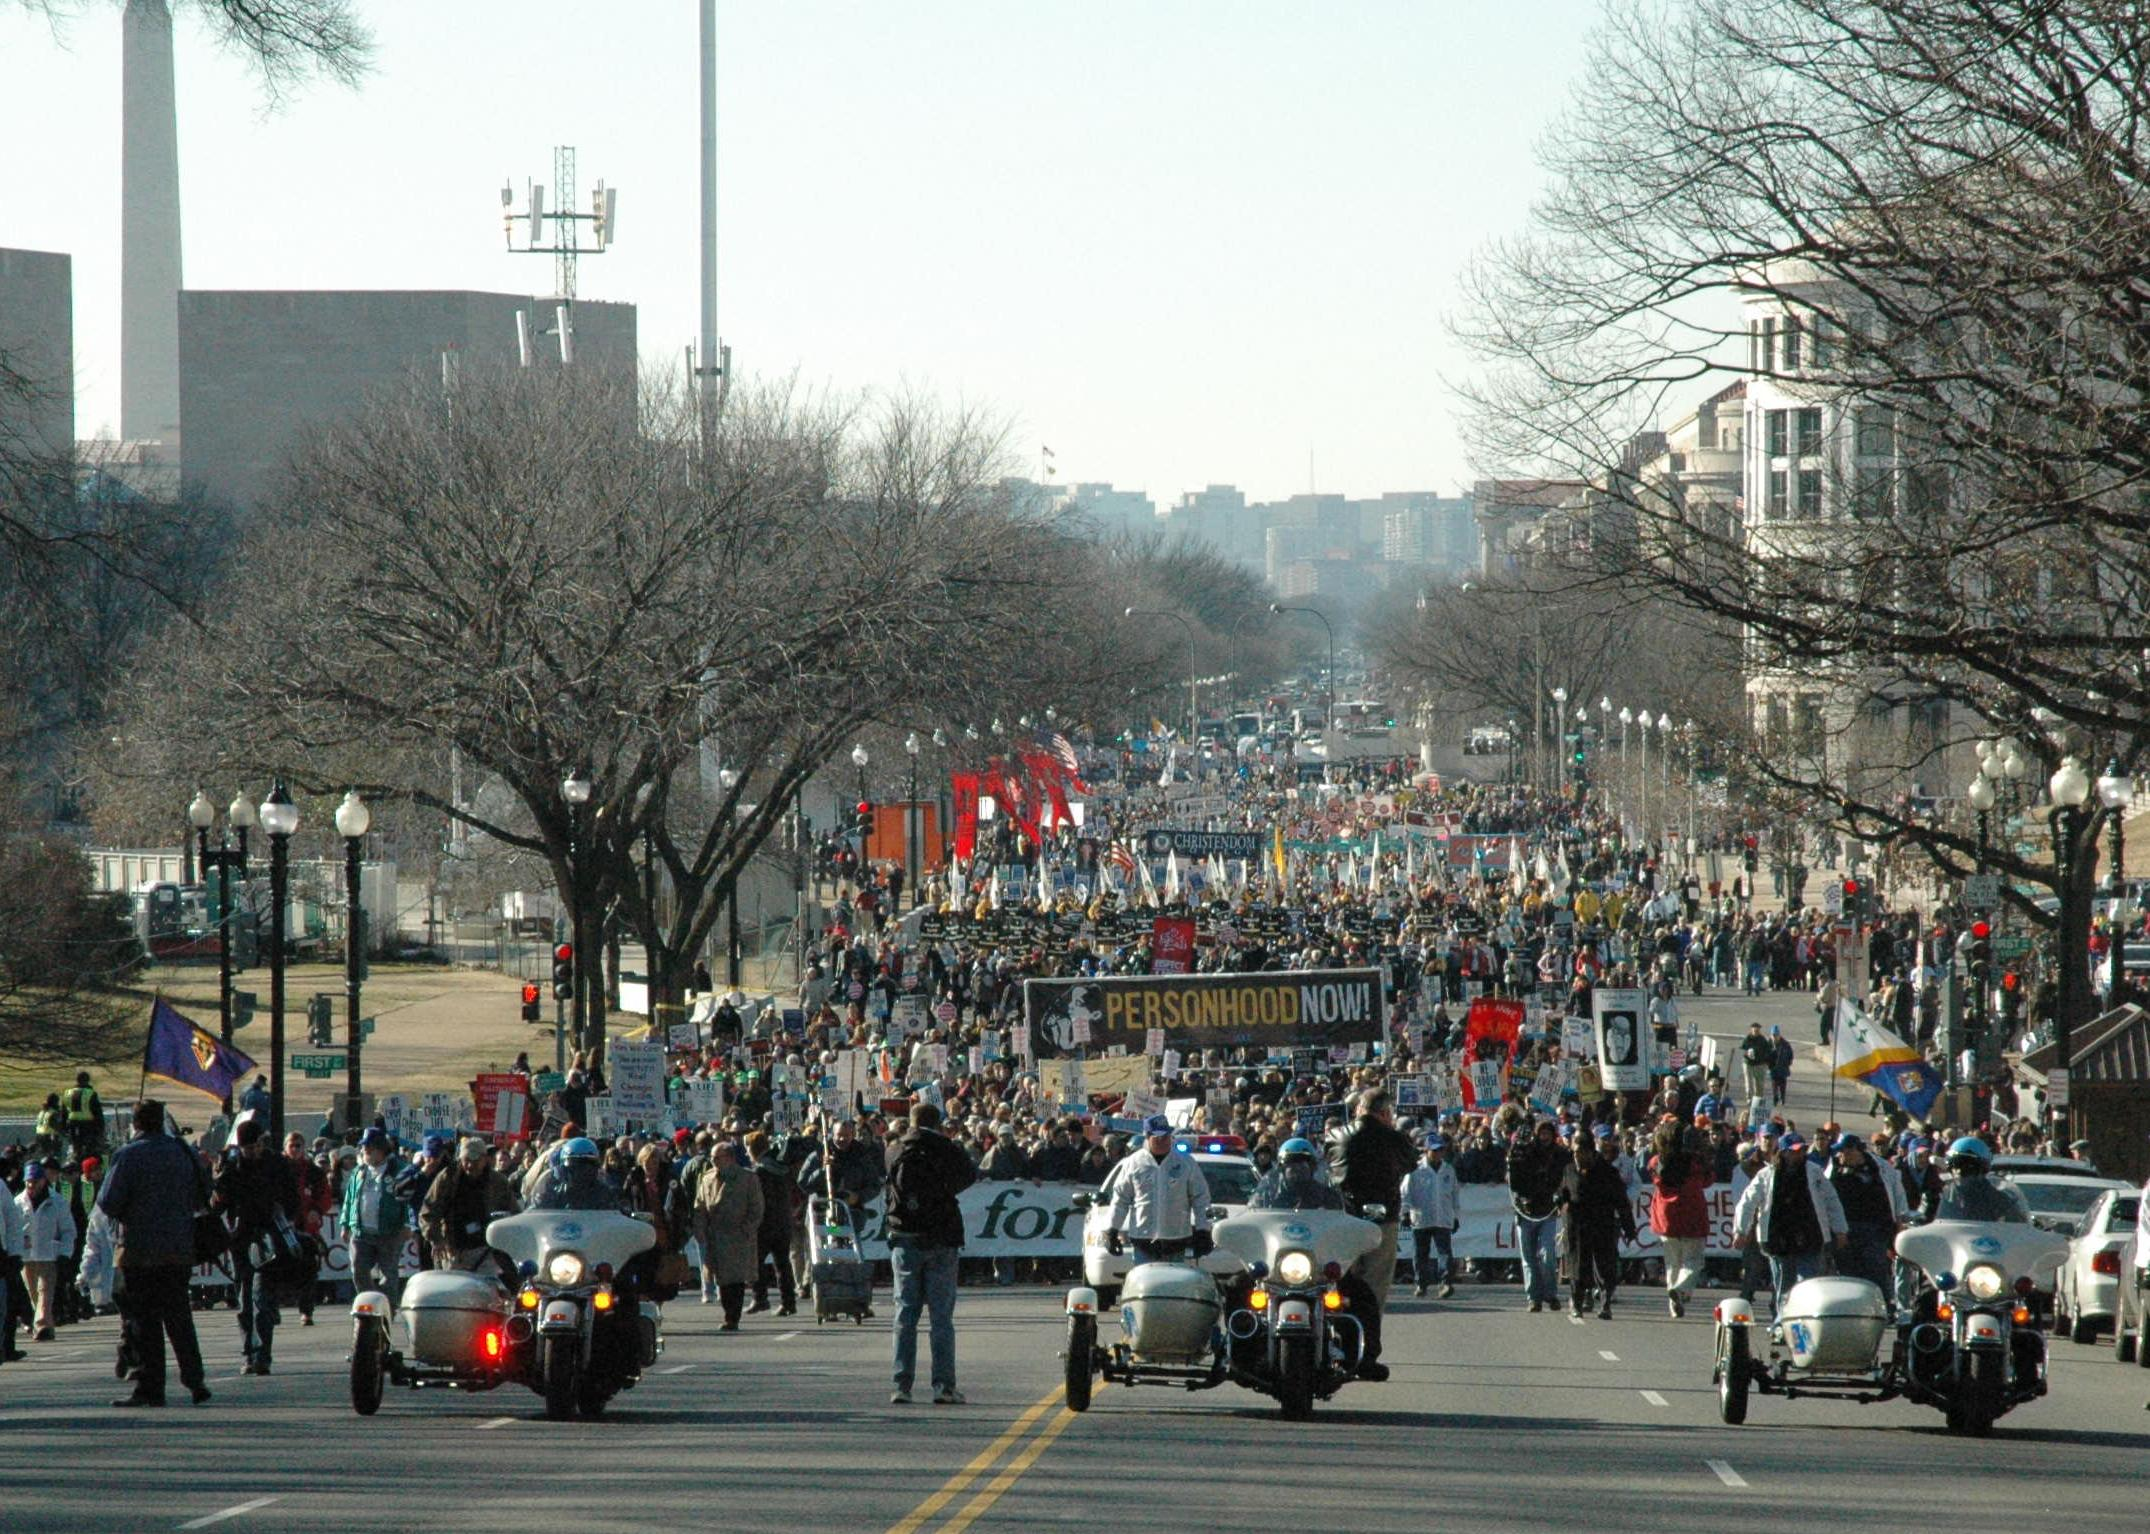 When pro-lifers fight, rather than unite